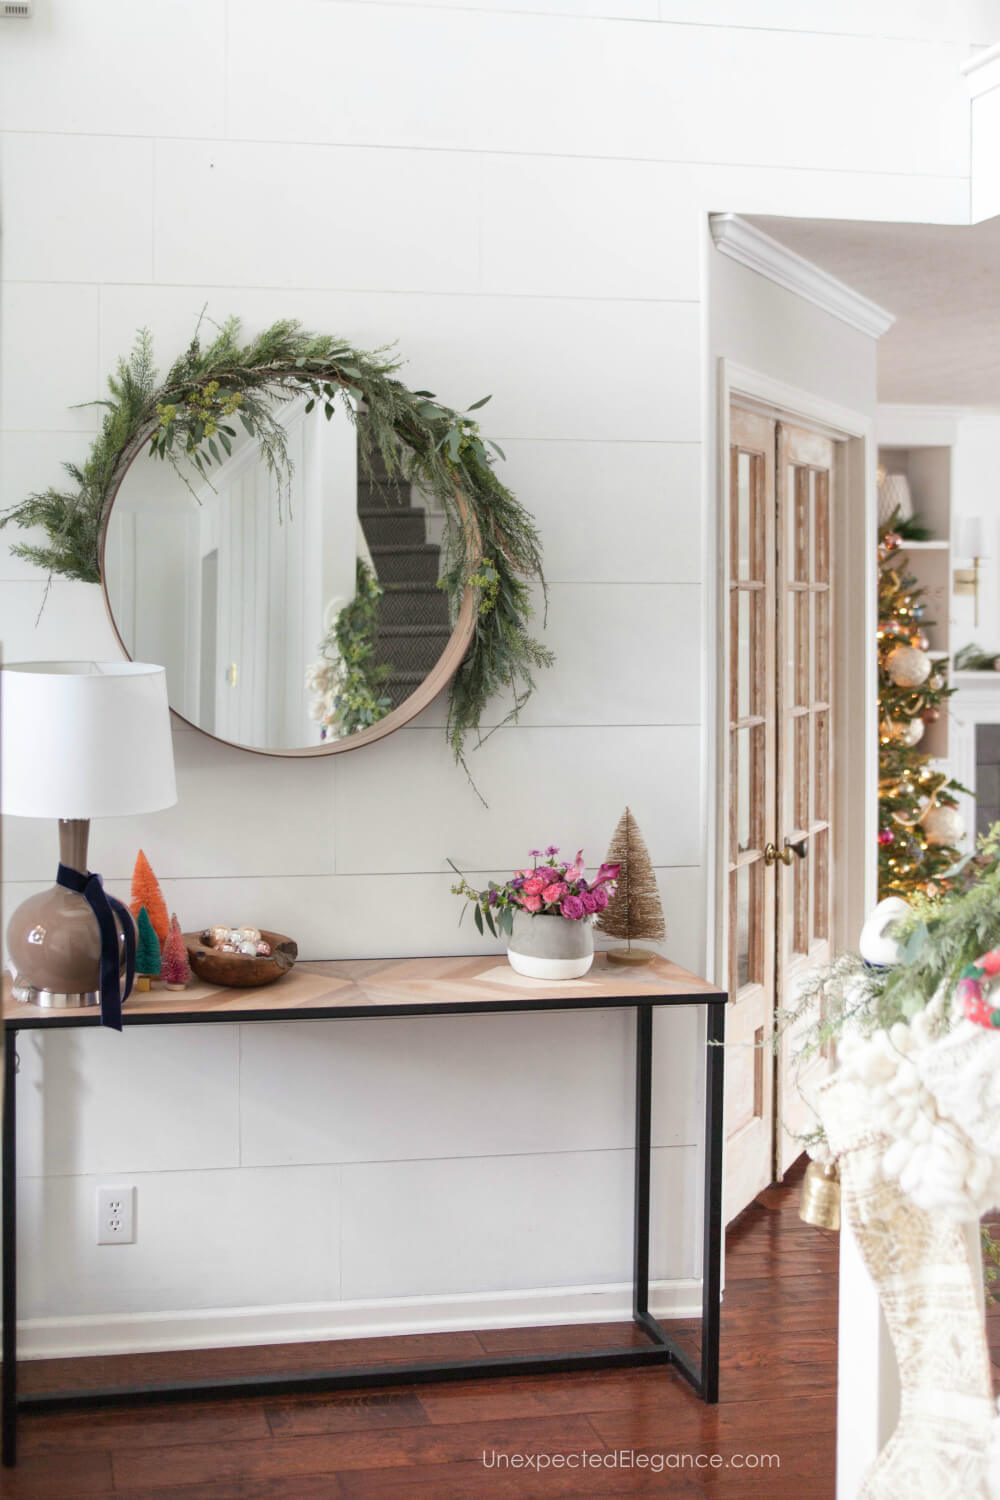 What items to purchase for decorating the hall for Christmas. #holidaydecor #christmasdecor